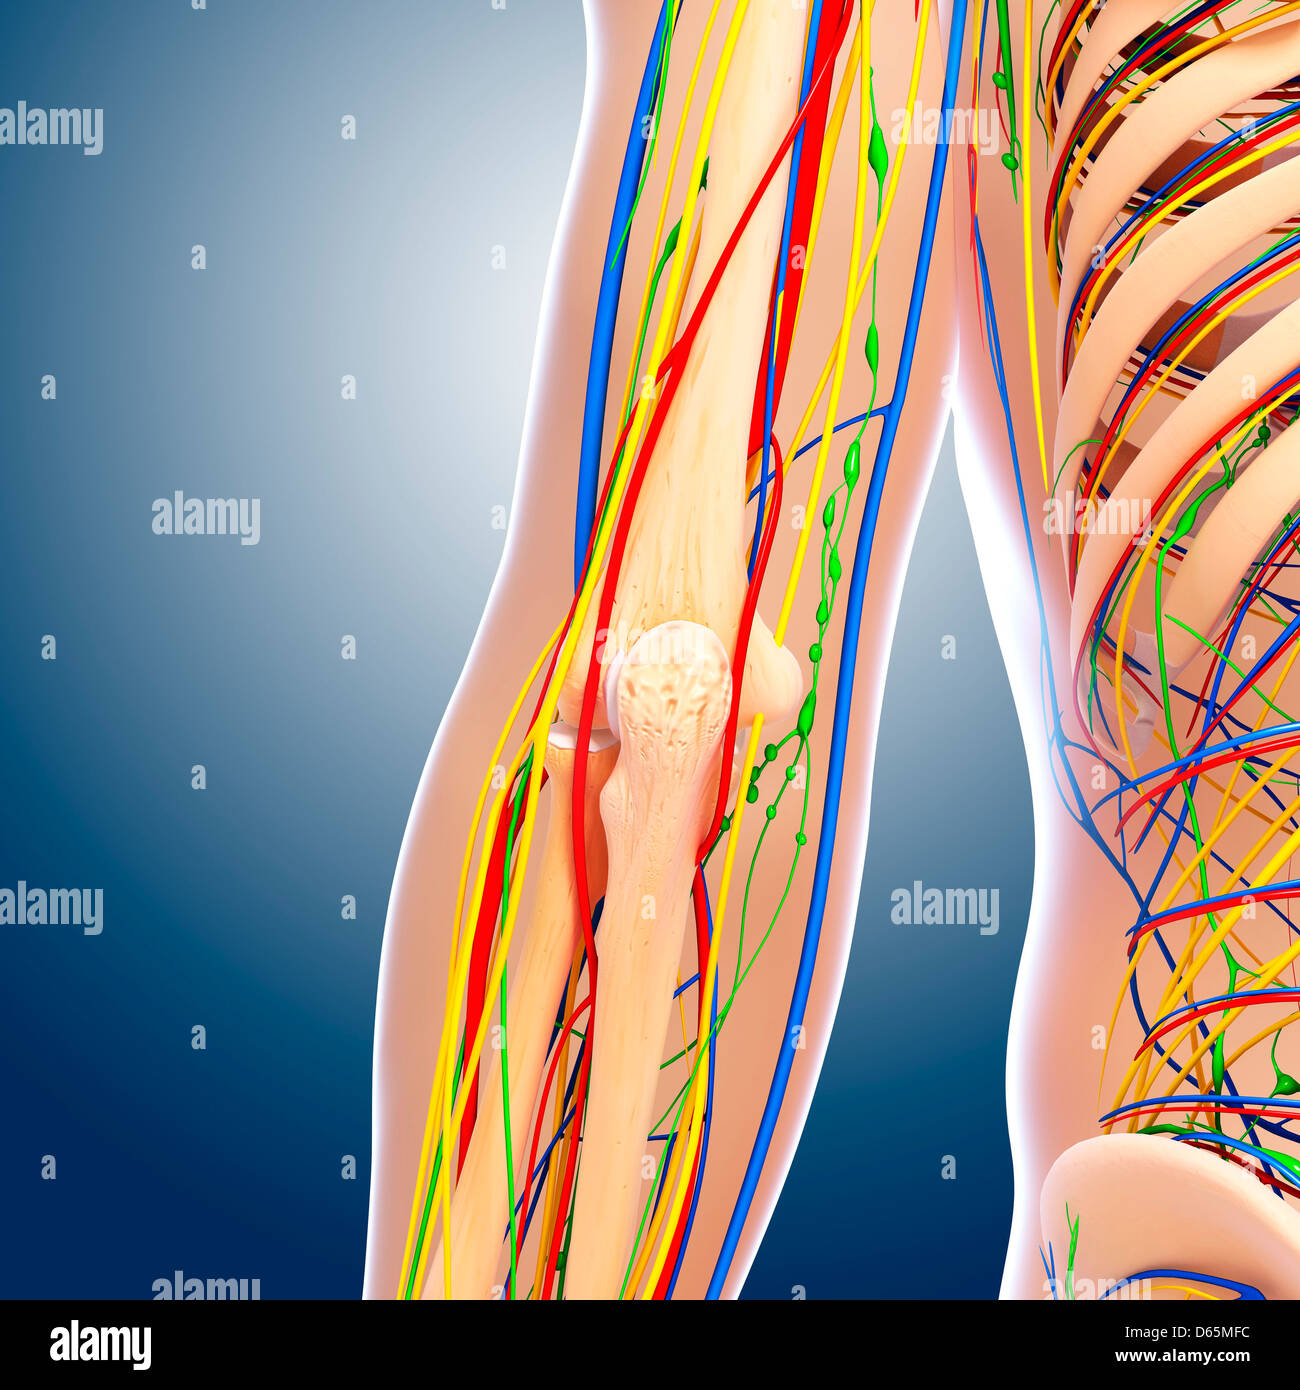 Human Skeleton Arm Elbow Anatomy Stock Photos & Human Skeleton Arm ...